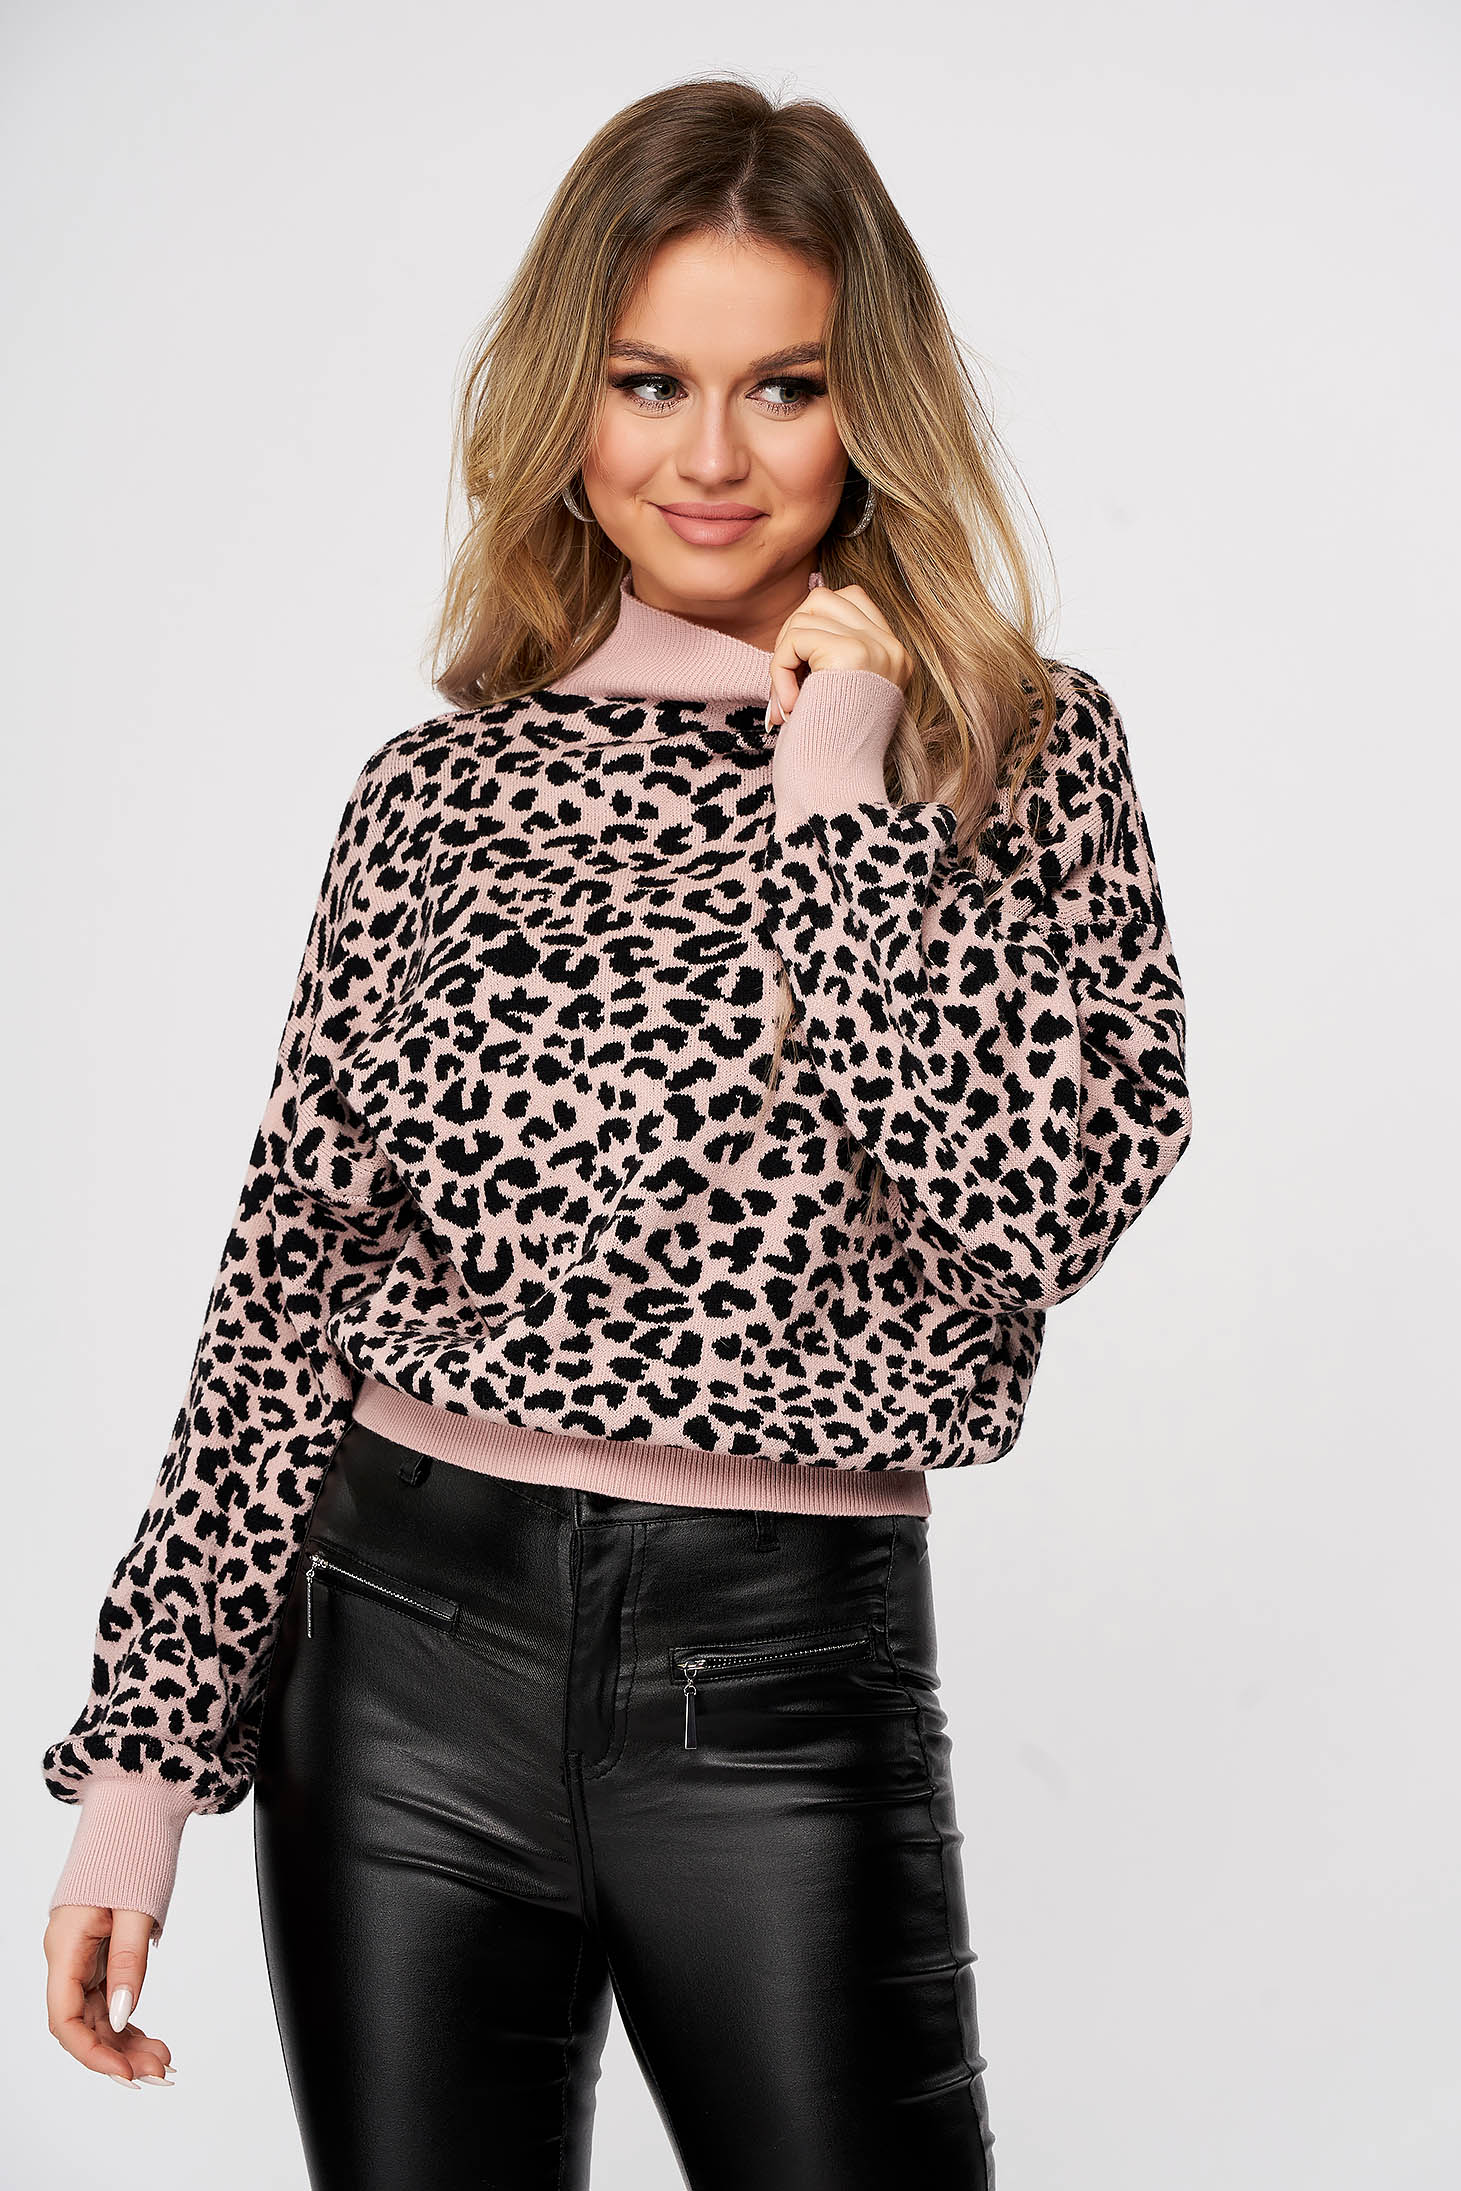 Lightpink sweater turtleneck knitted with animal print casual